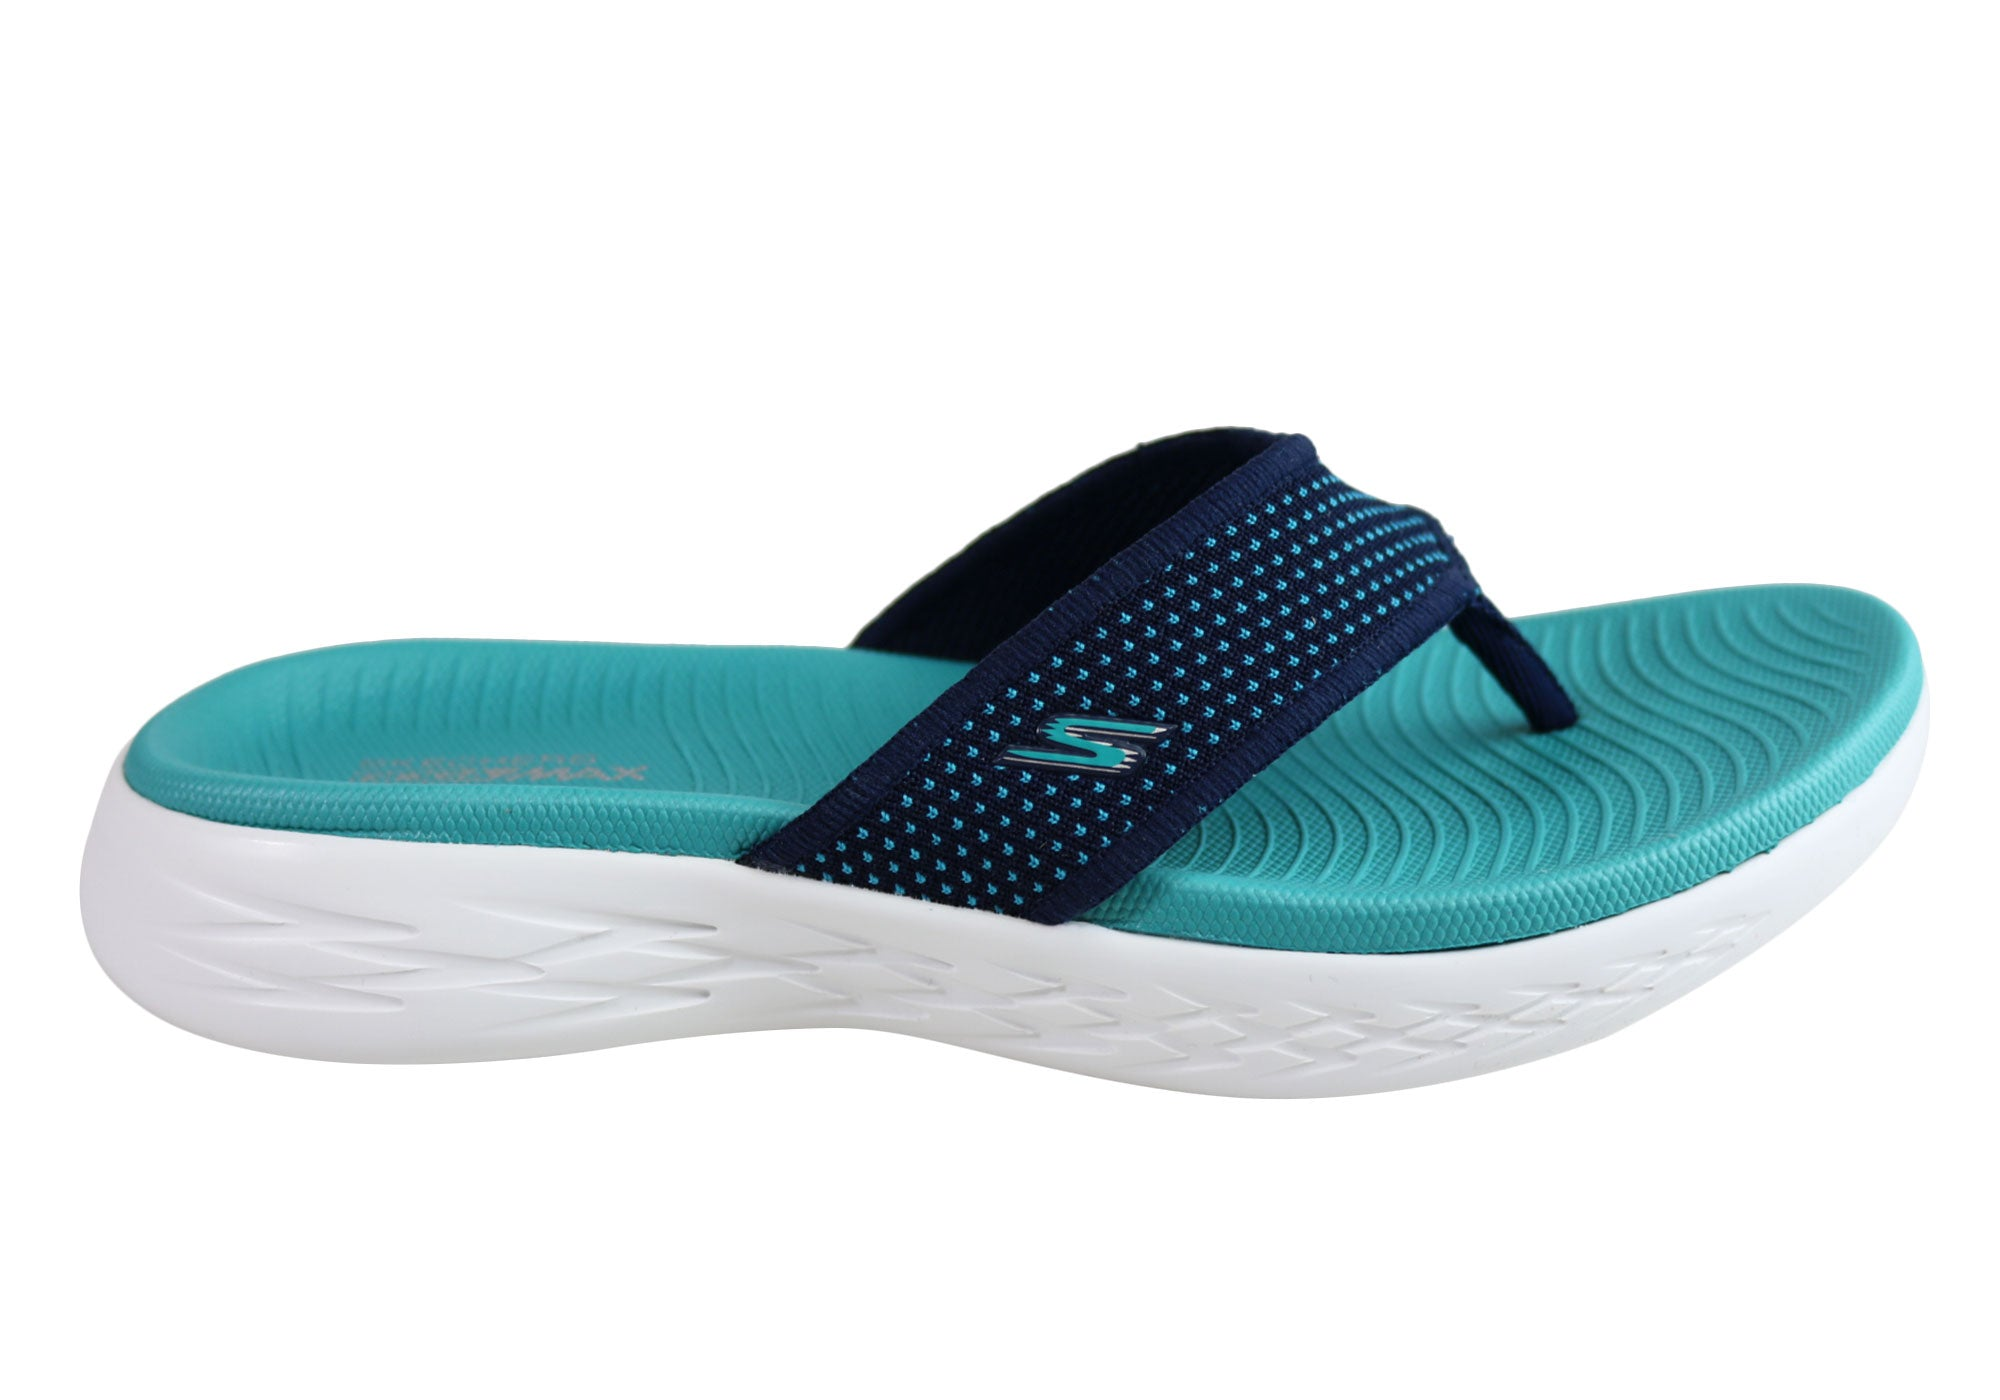 f26cb4e045 Home Skechers Womens On The Go 600 Comfortable Cushioned Lightweight  Thongs. Navy Turquoise ...